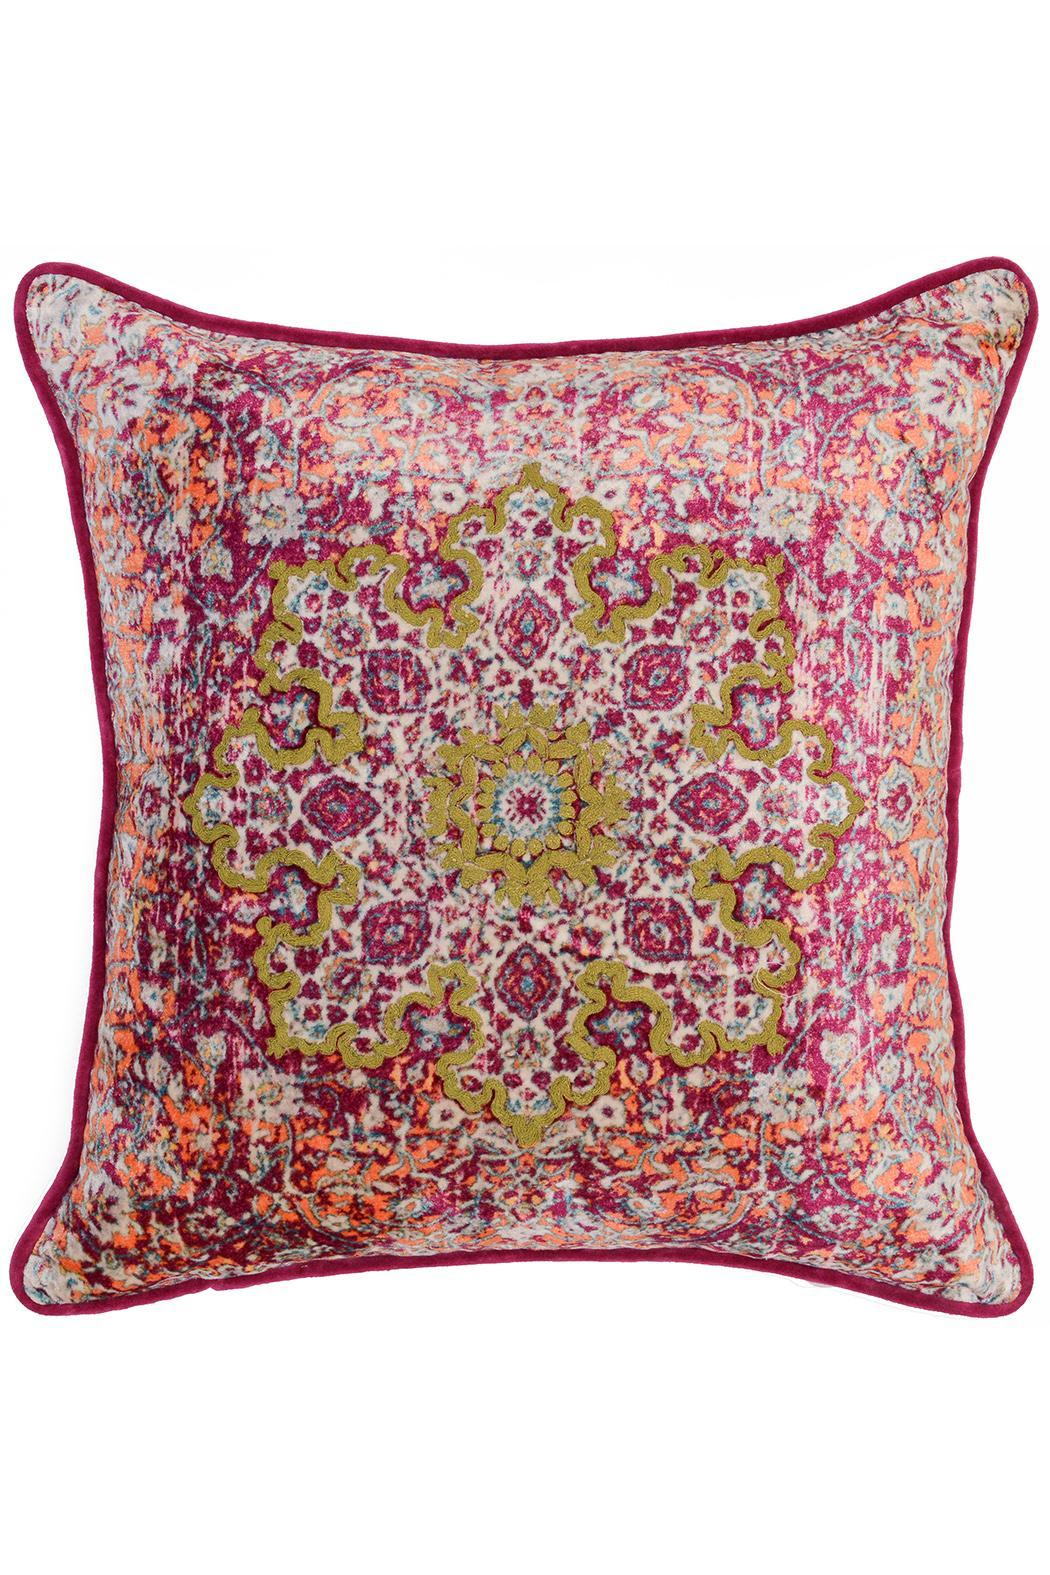 Villa home collection emilie pillow from atlanta by for Villa home collection pillows